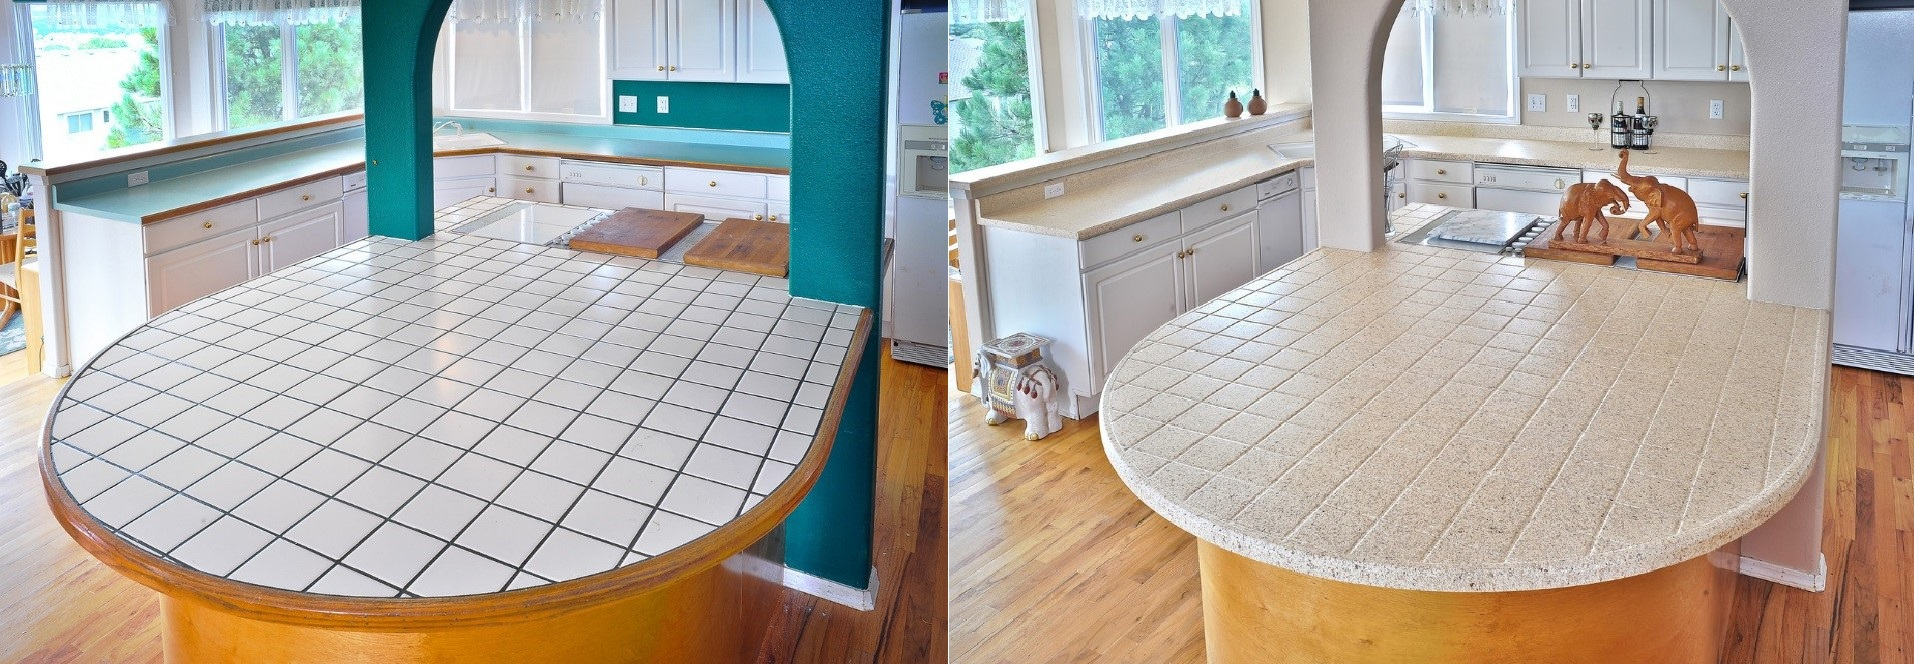 kitchen Archives - Miracle Method Surface Refinishing Blog